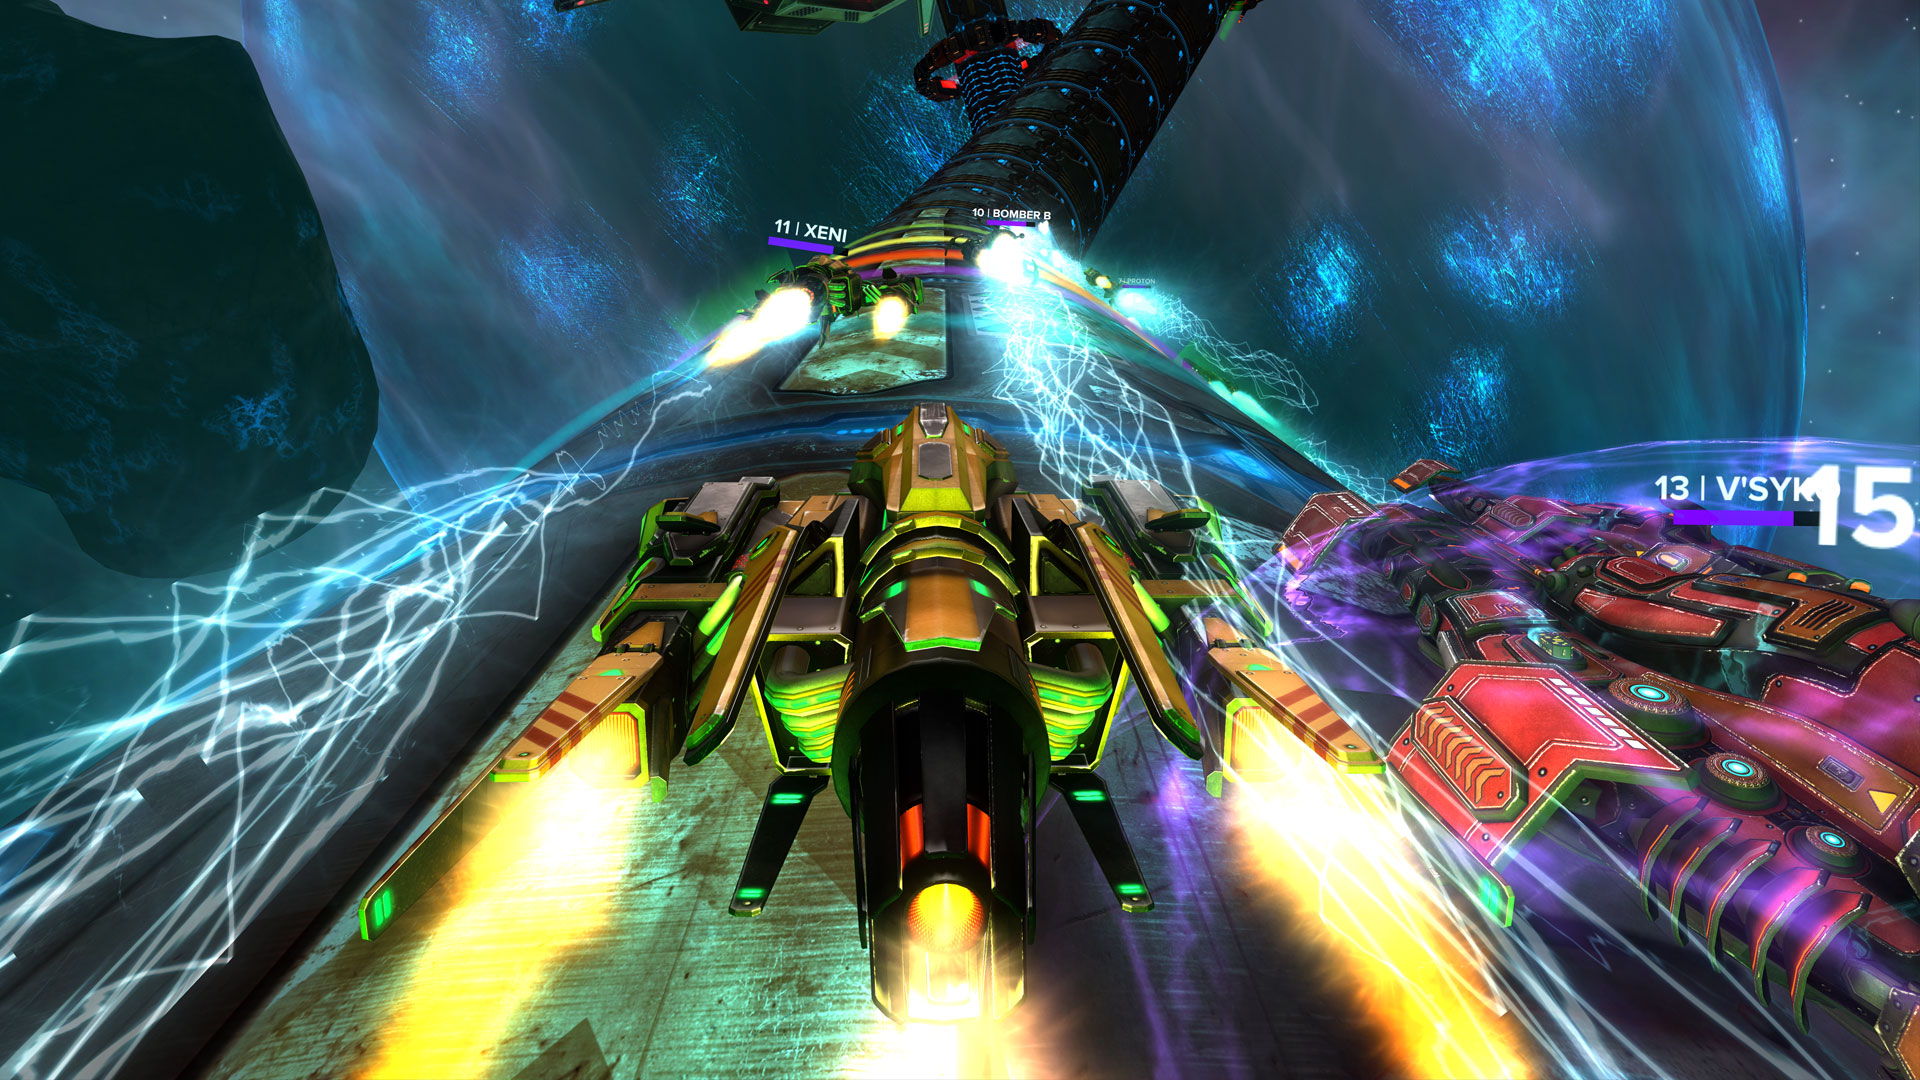 Racing screenshot in space